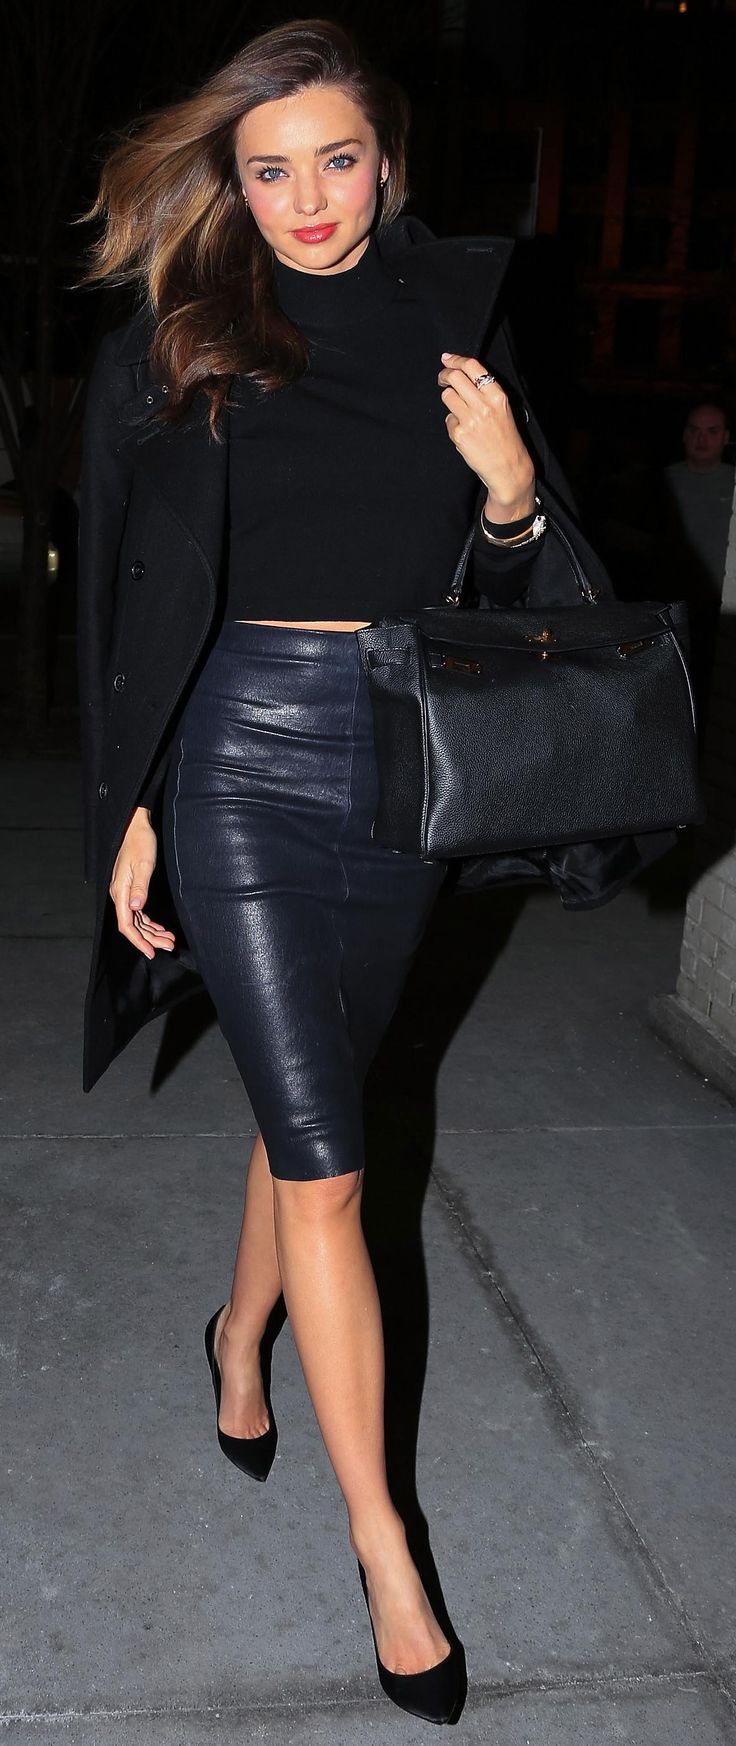 Miranda Kerr superb in all black and a leather pencil skirt <3